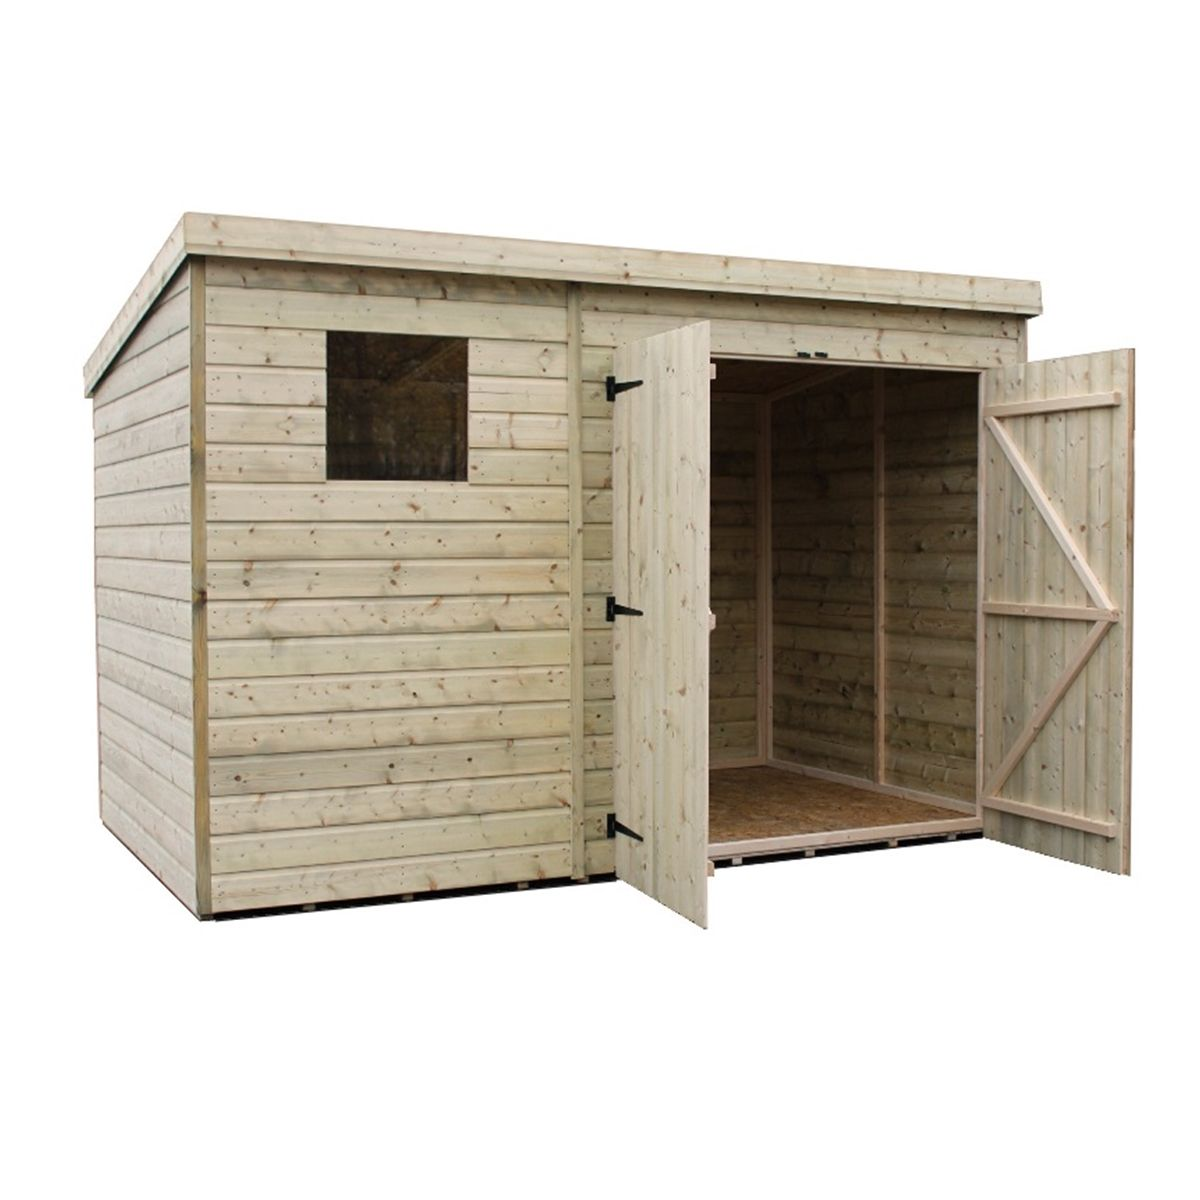 10 X 4 Pressure Treated Tongue And Groove Pent Shed With 1 Window And Double Doors Safety Toughened Glass Diy Shed Plans Building A Shed Shed